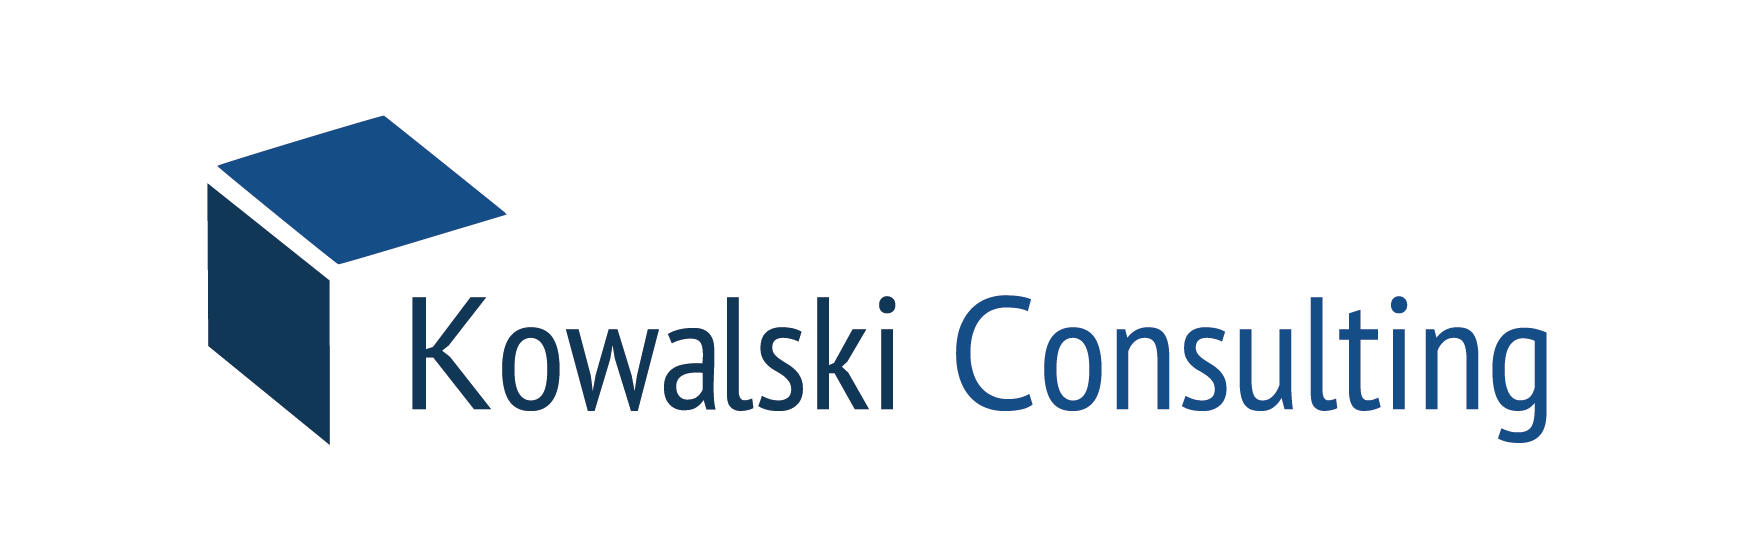 Kowalski Consulting